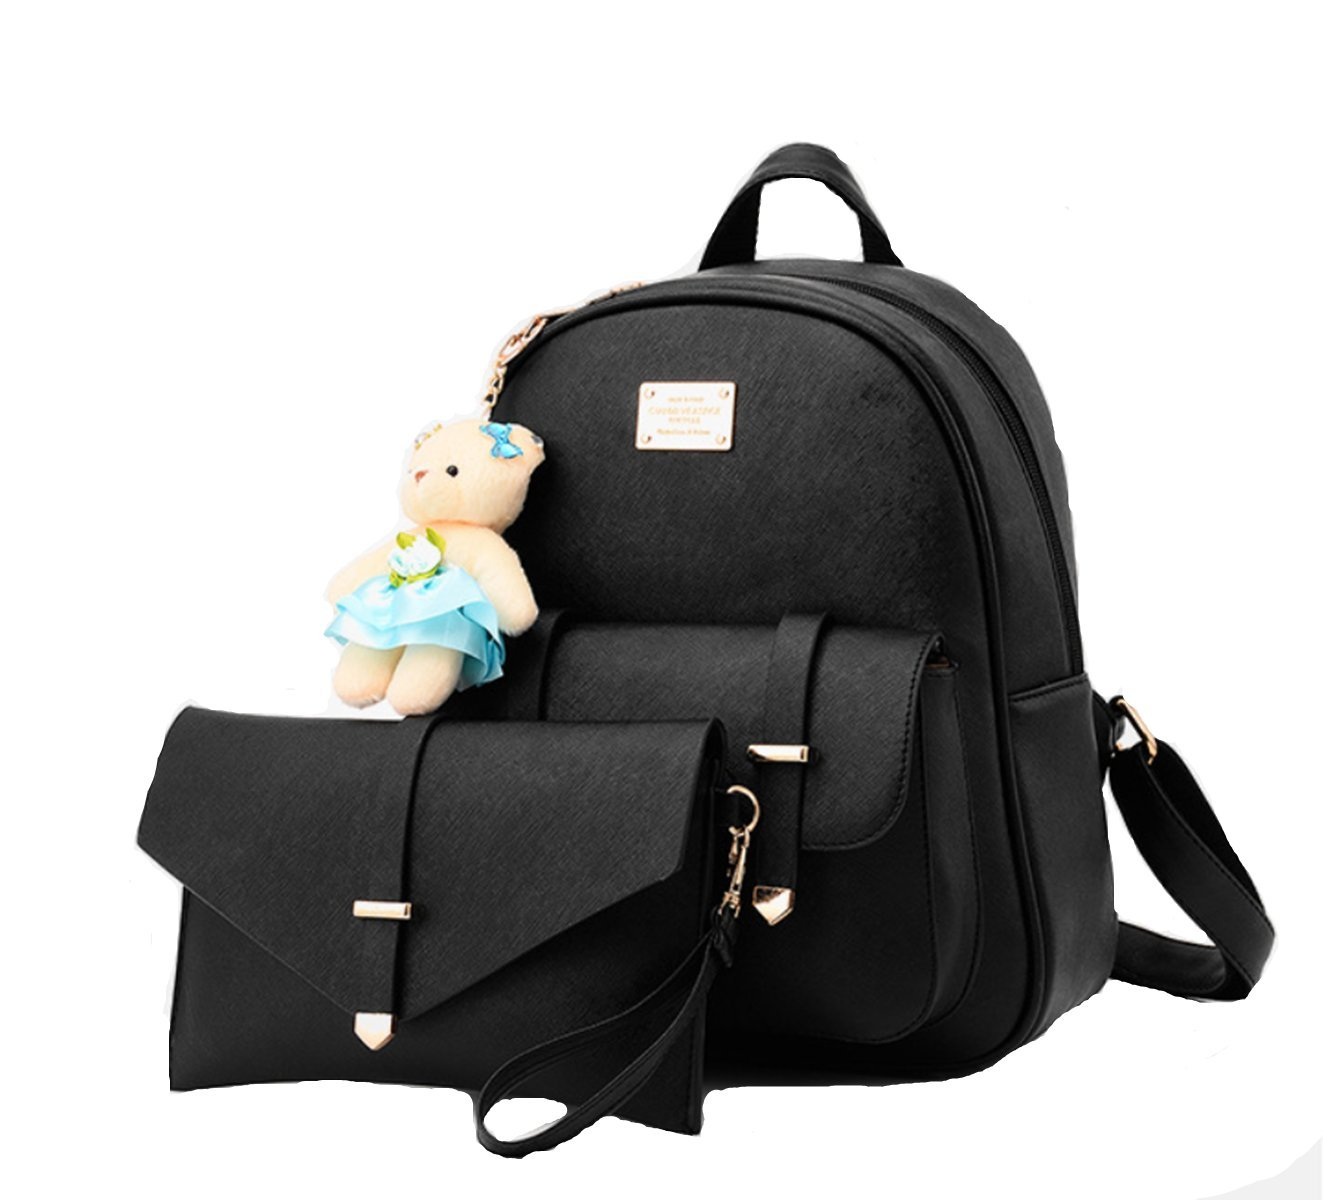 beautywjyスクールバッグカジュアルレザーバックパックPurse Satchelナップサックfor College B072L5XCNH 16# 16#